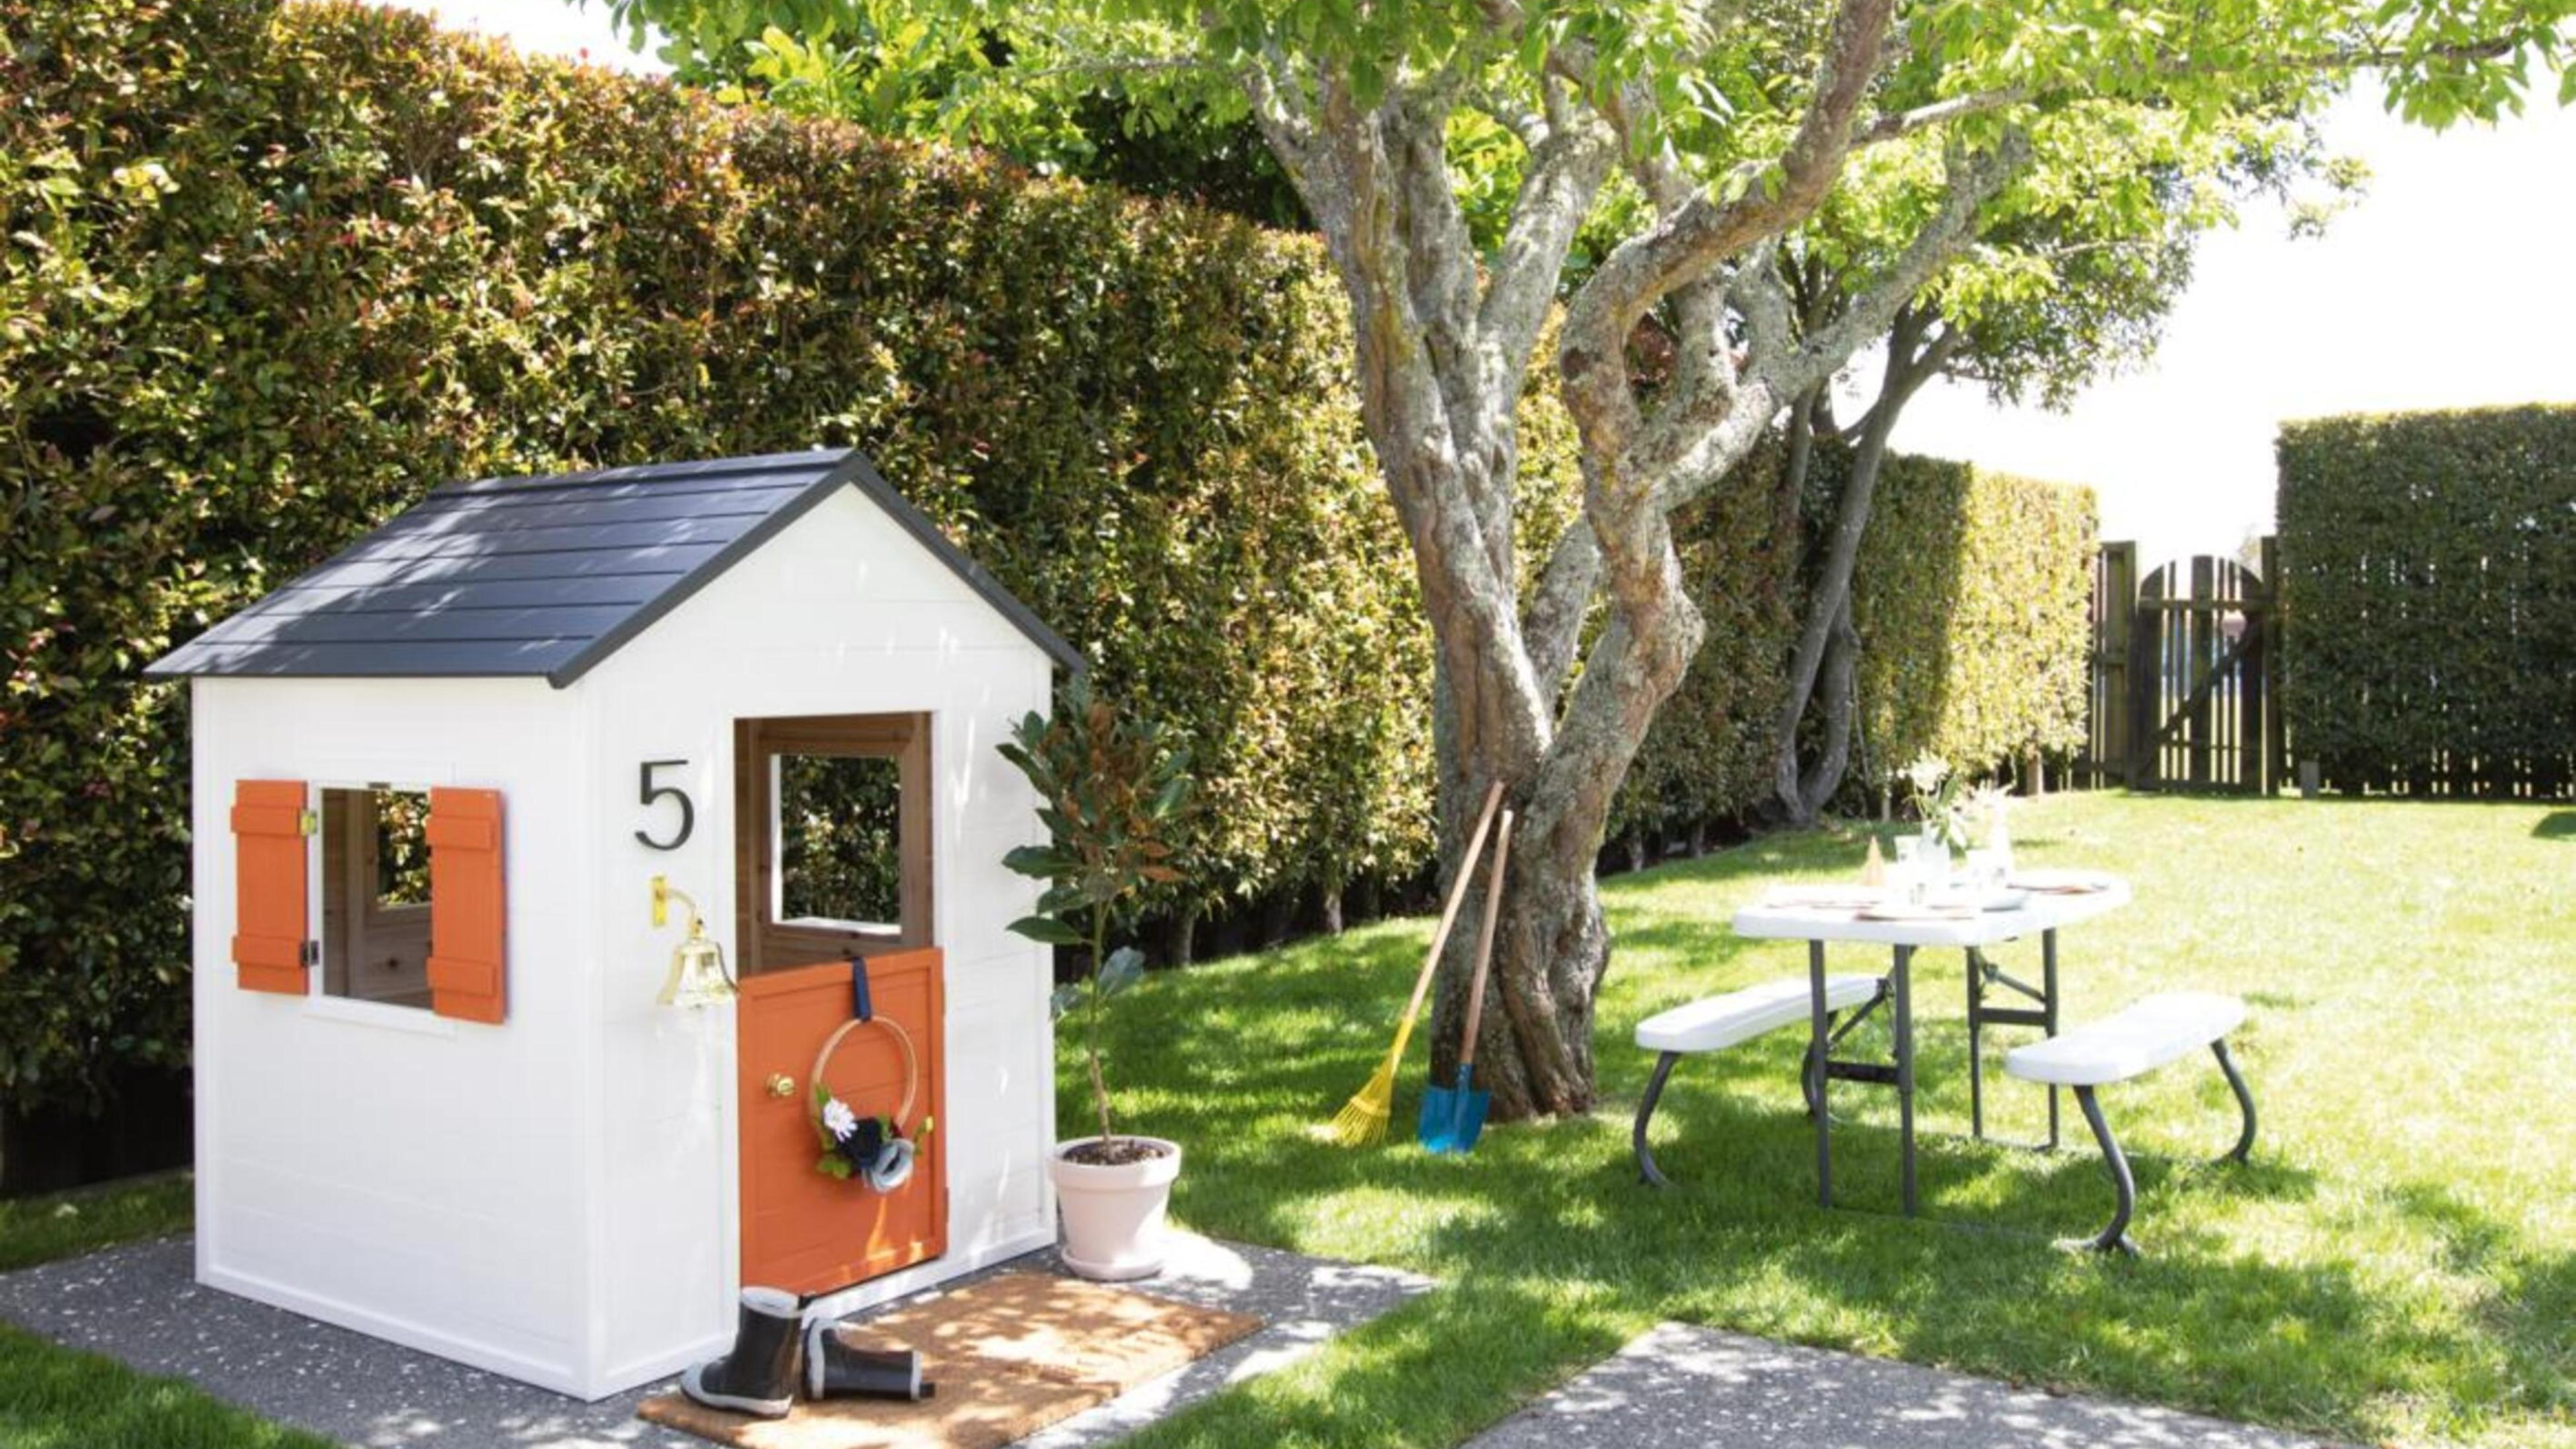 Green garden with tree, pinic table and cubby house.